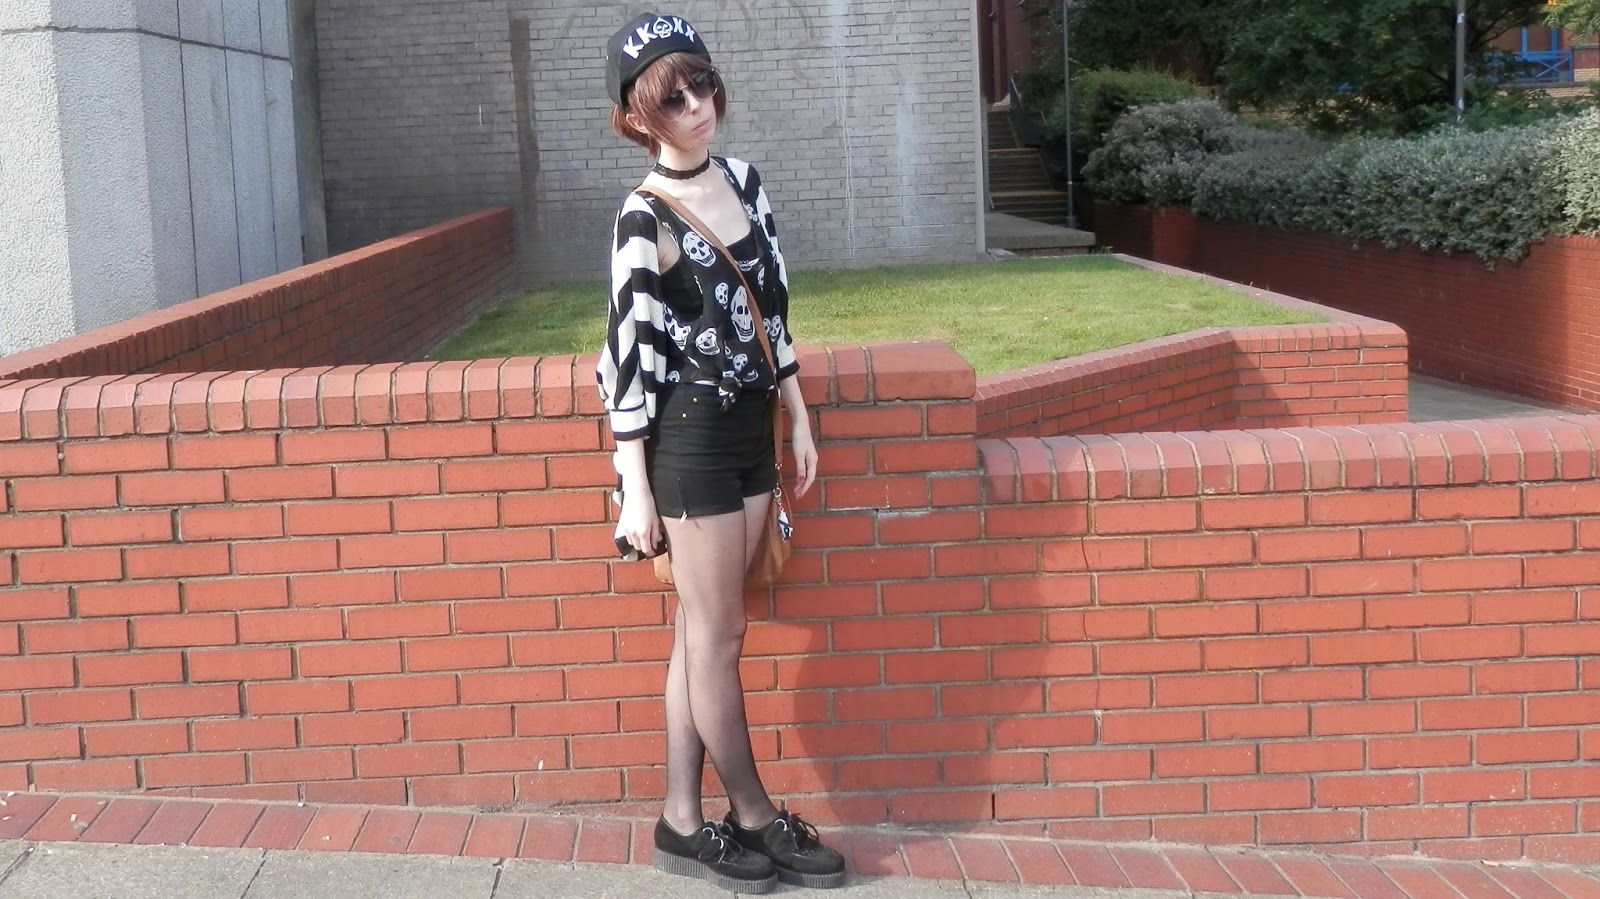 Skulls and Creepers outfit, out to wear creepers